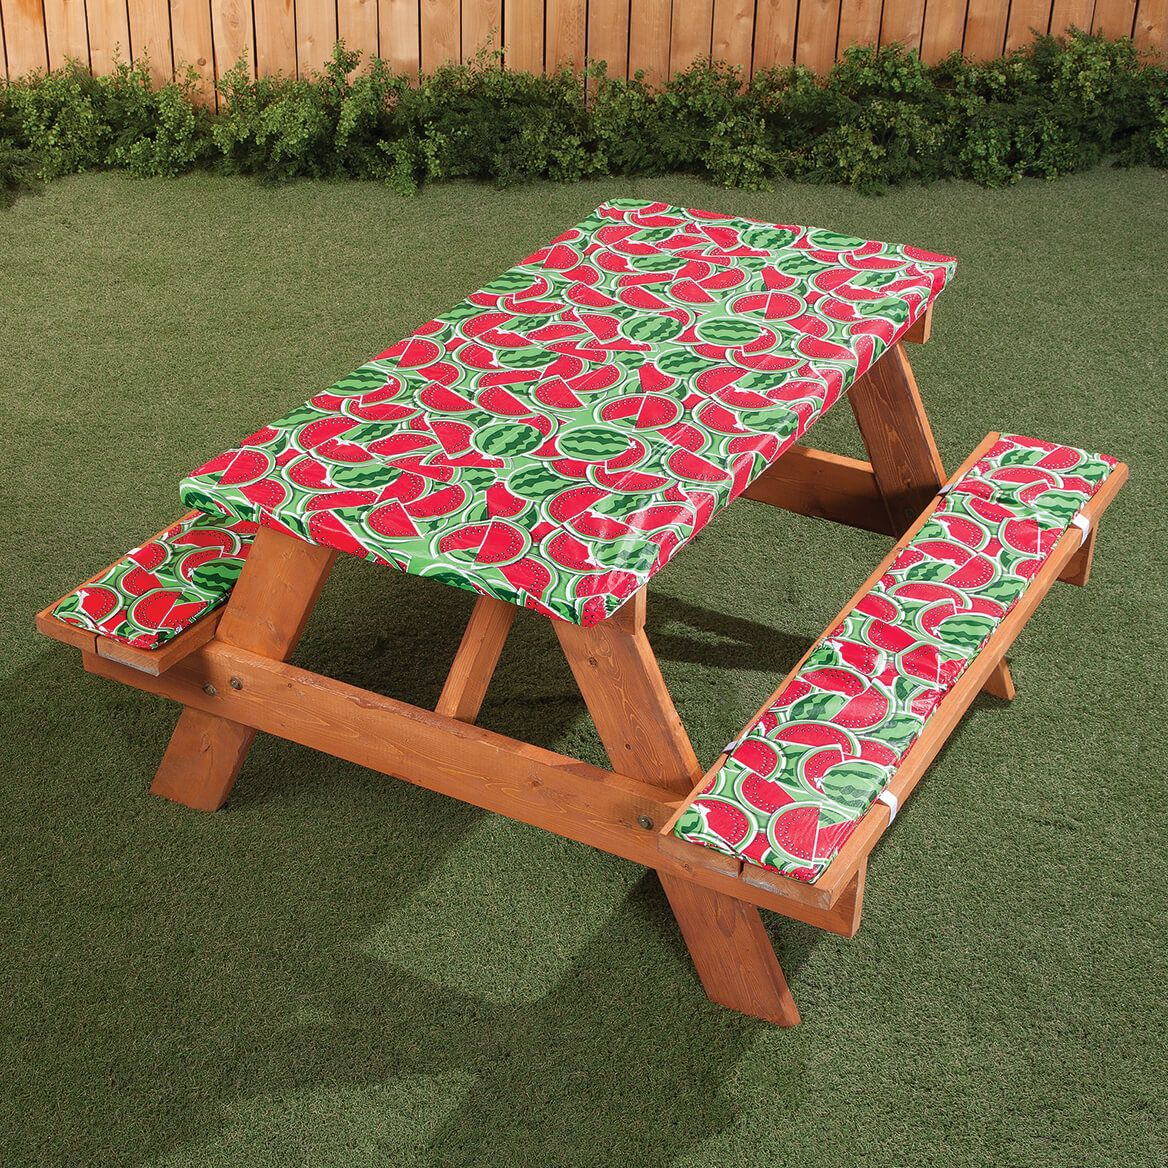 Deluxe Picnic Table Cover w/ Cushions by HSK Watermelon-366977